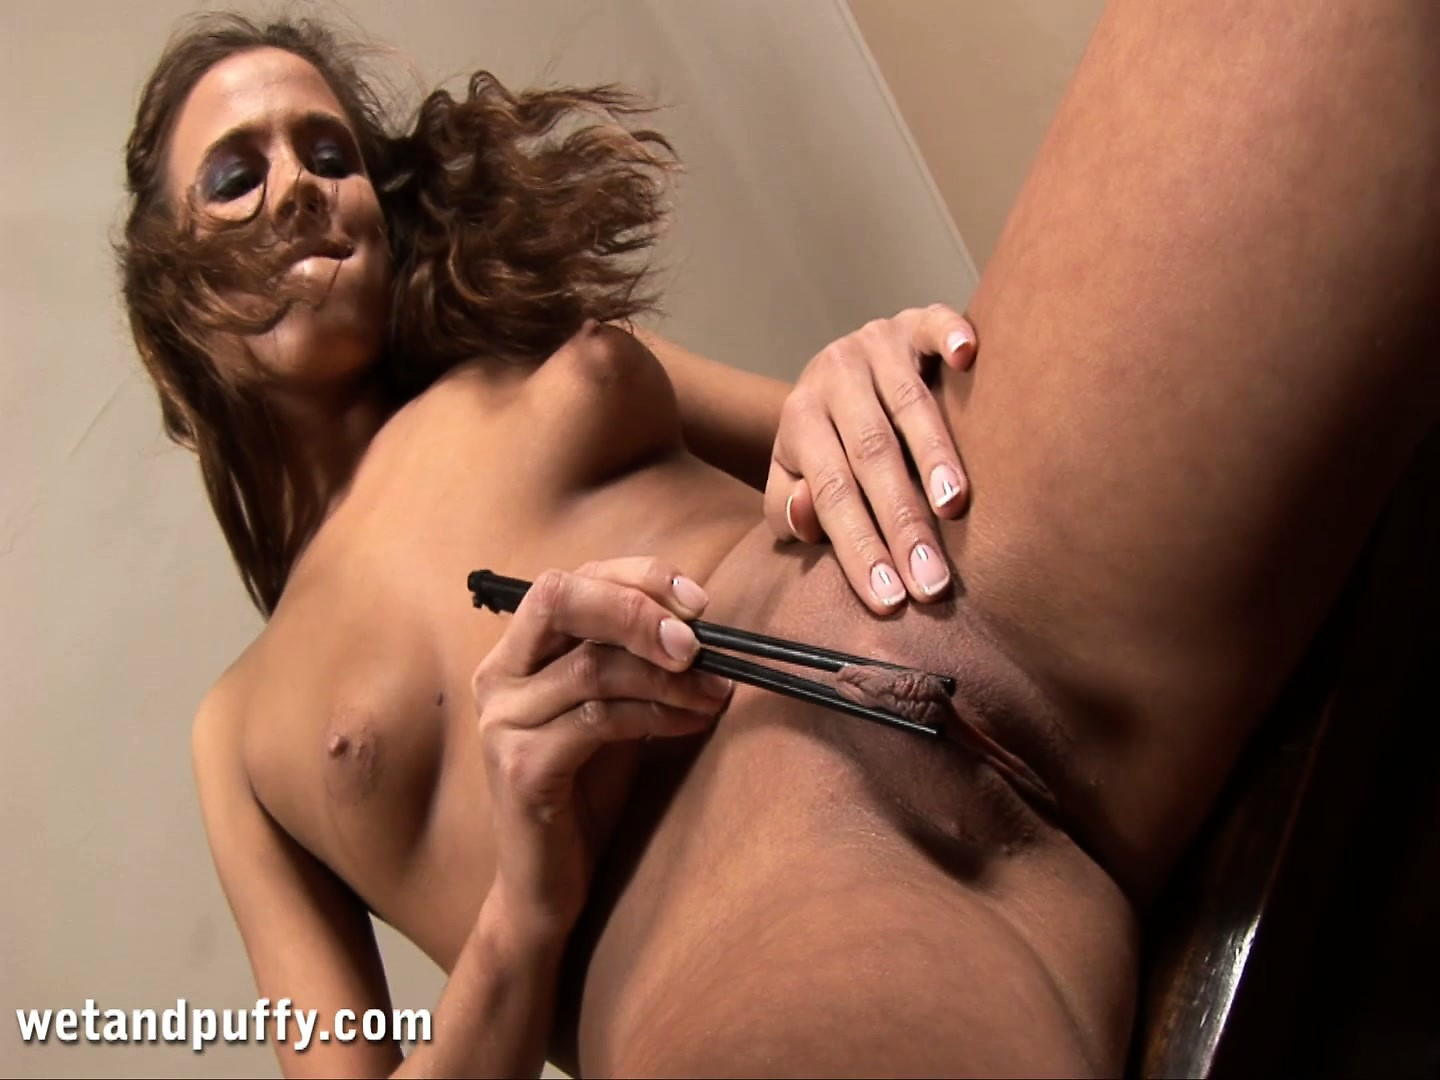 Porn Tube of Abby Comes Up With A New Use For Her Chopsticks, Her Pussy Loves It